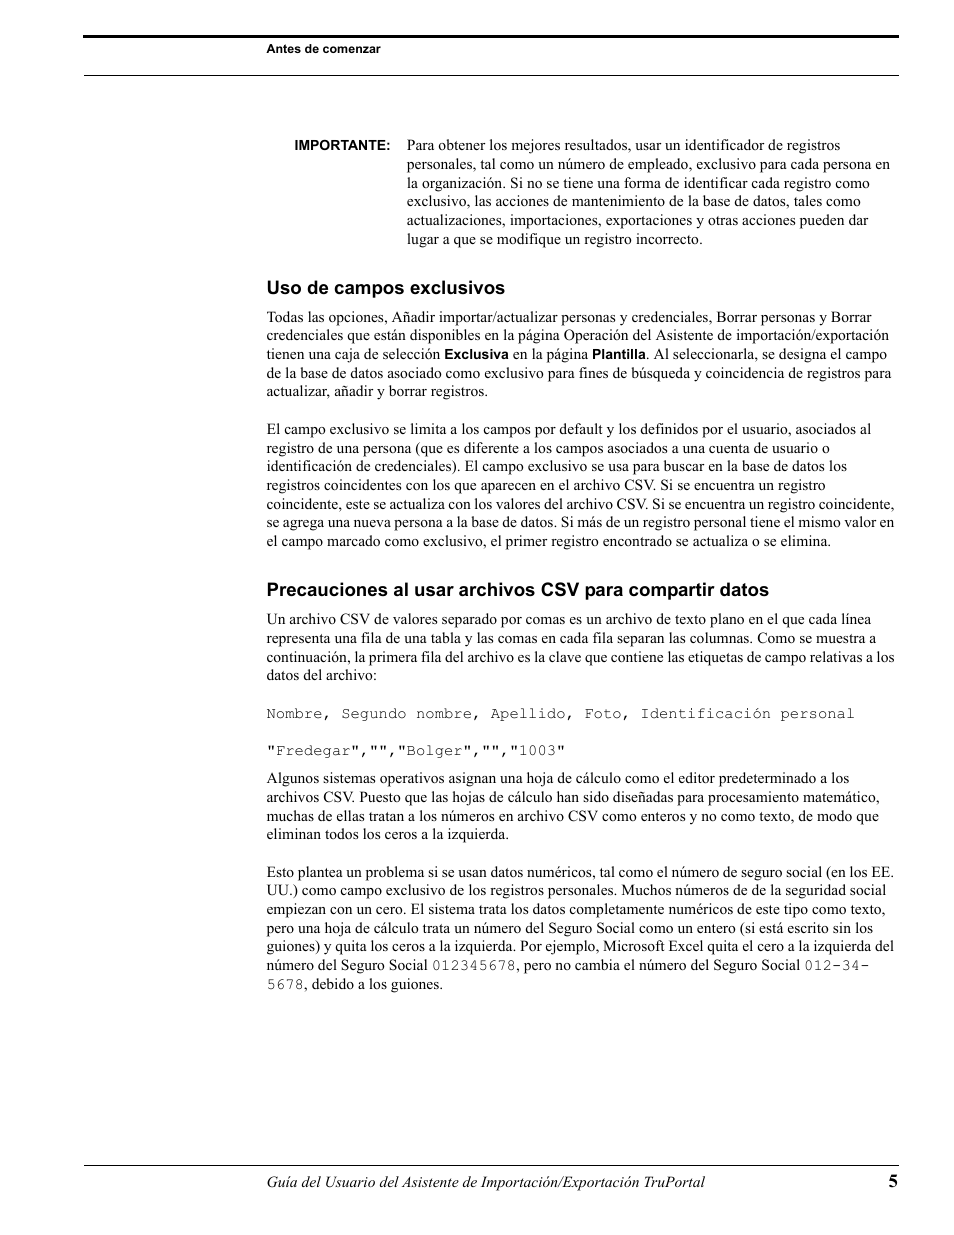 Uso de campos exclusivos | Interlogix TruPortal User Guide Manual ...